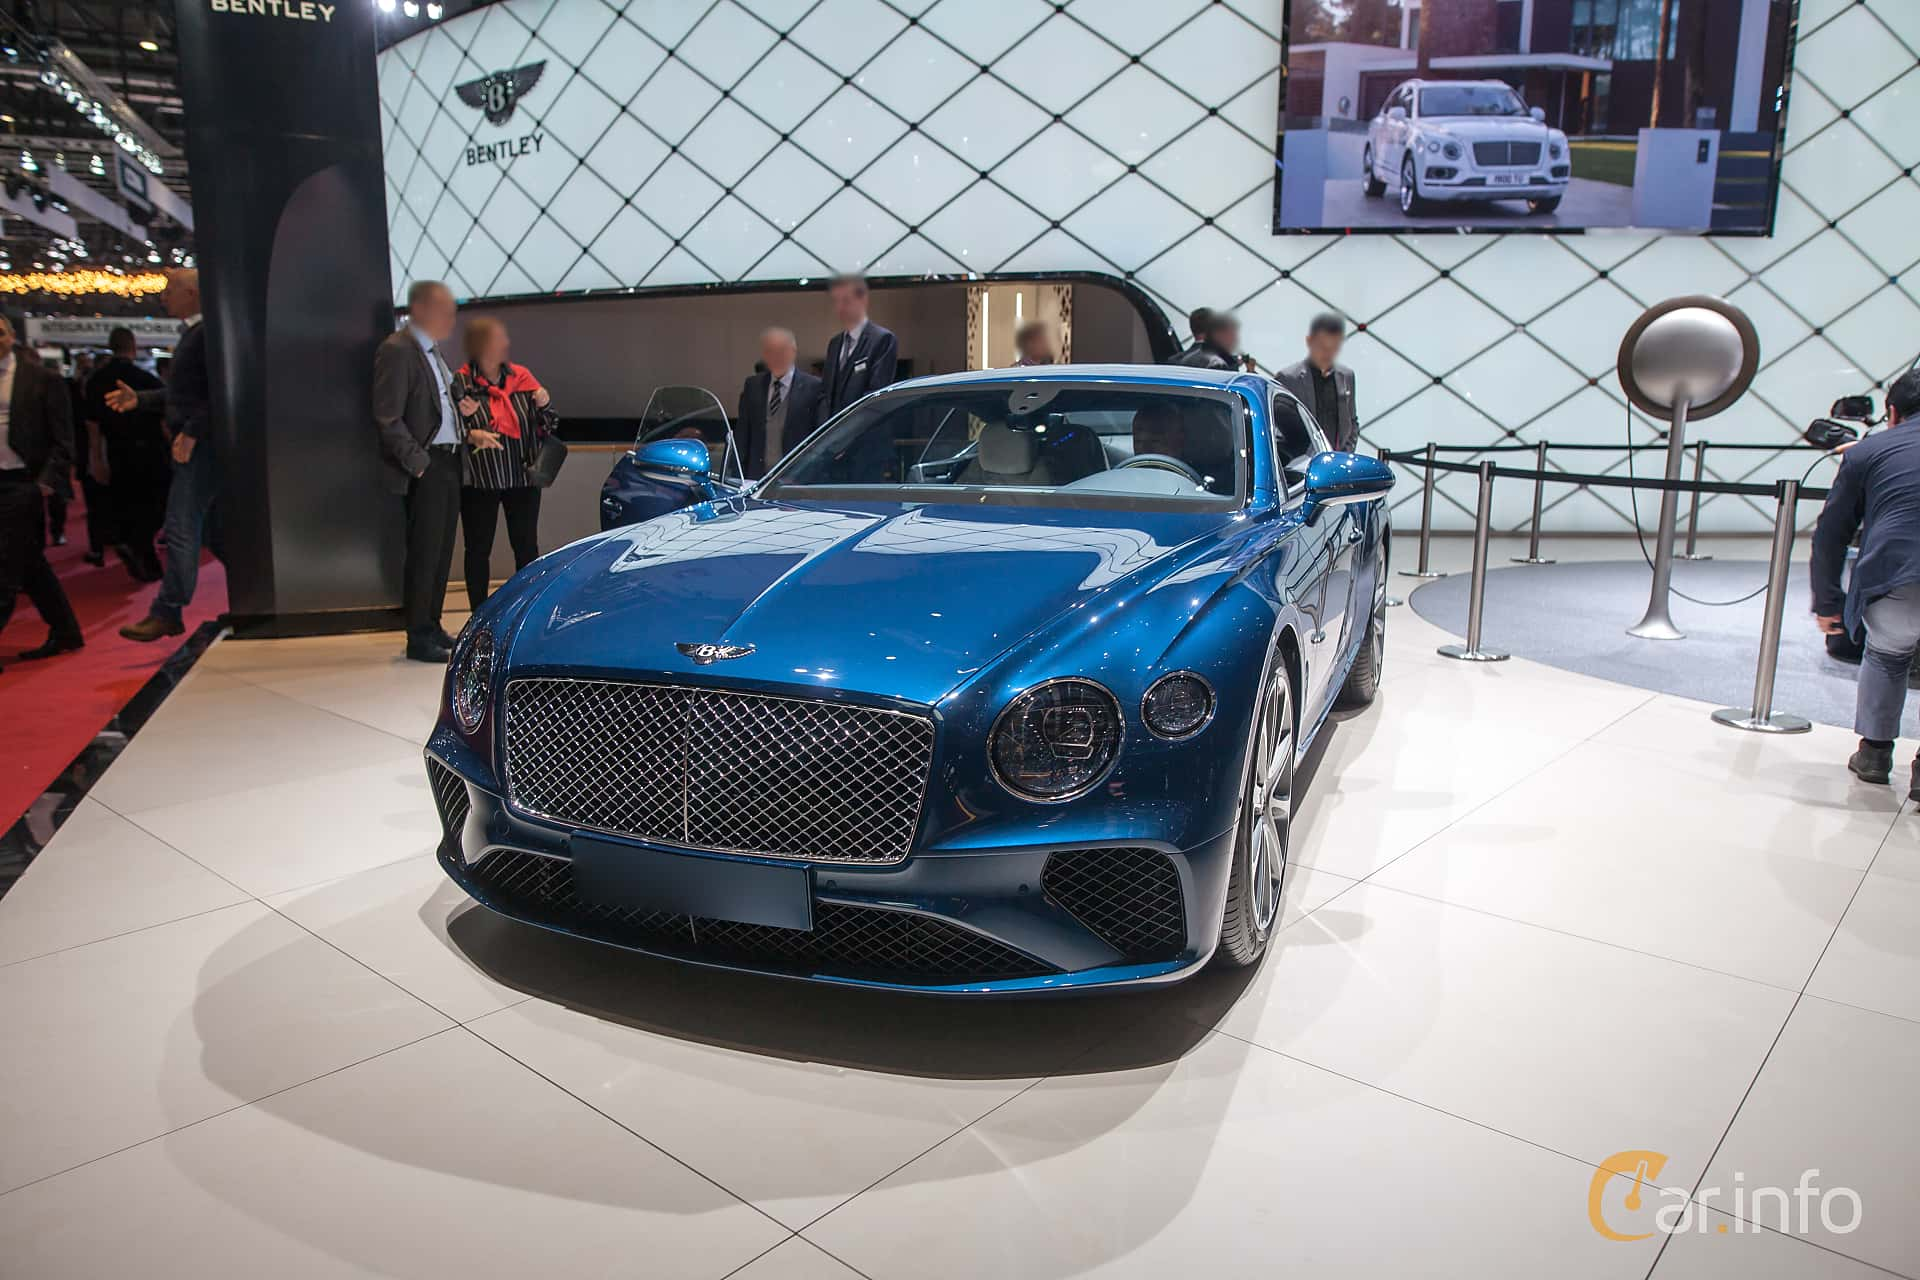 Front/Side  of Bentley Continental GT 6.0 W12 TSI DCT, 635ps, 2018 at Geneva Motor Show 2018